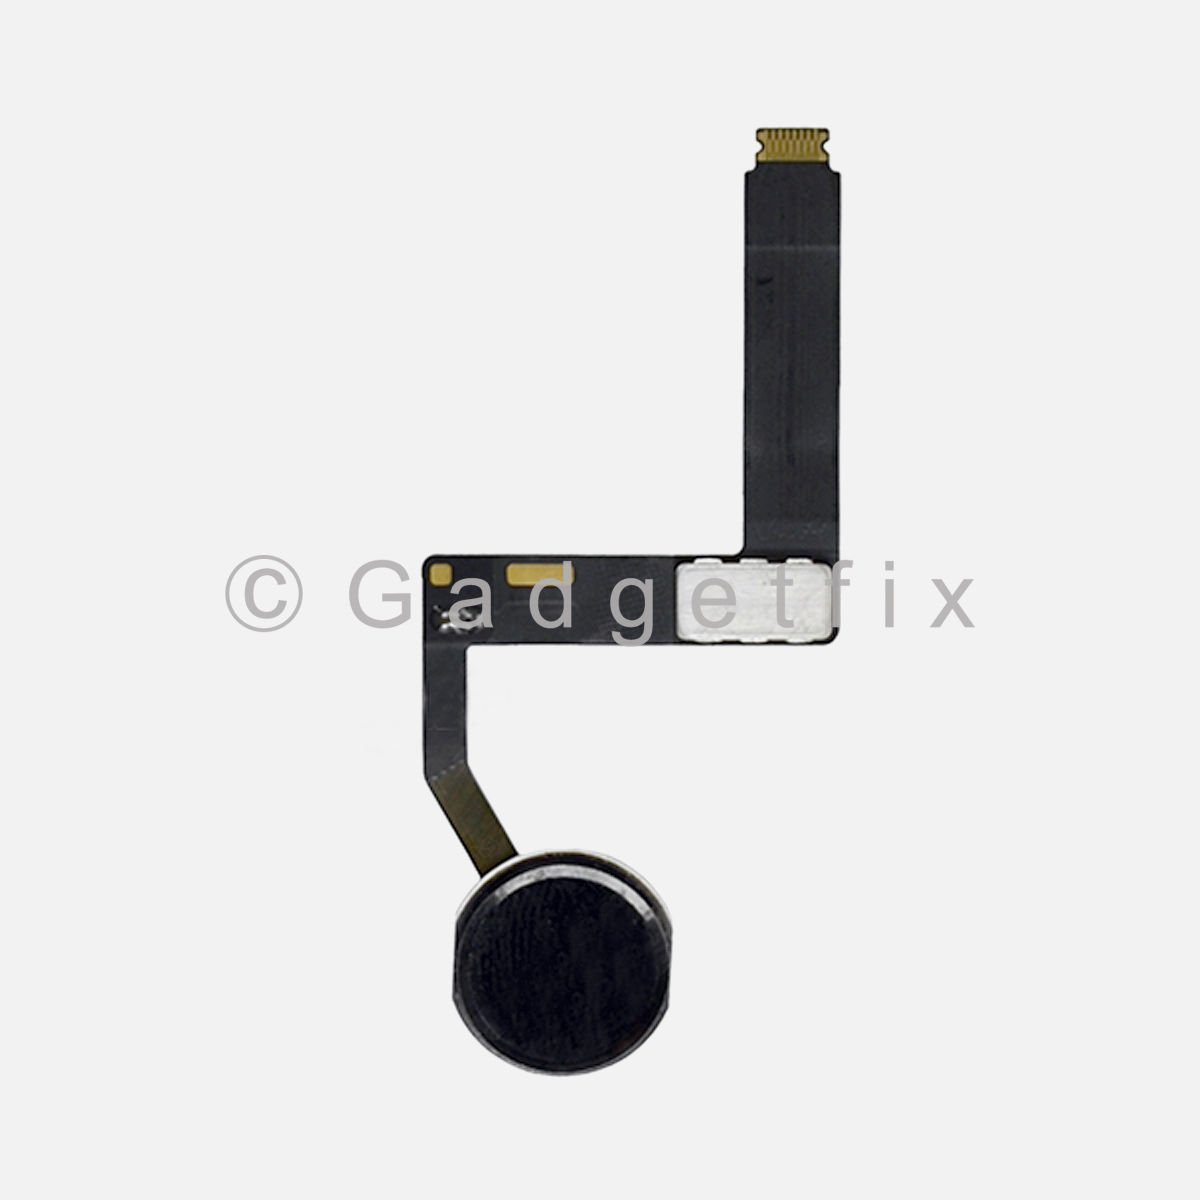 Black Home Menu Button Flex Cable Replacement for iPad Pro 9.7 A1673 A1674 A1675